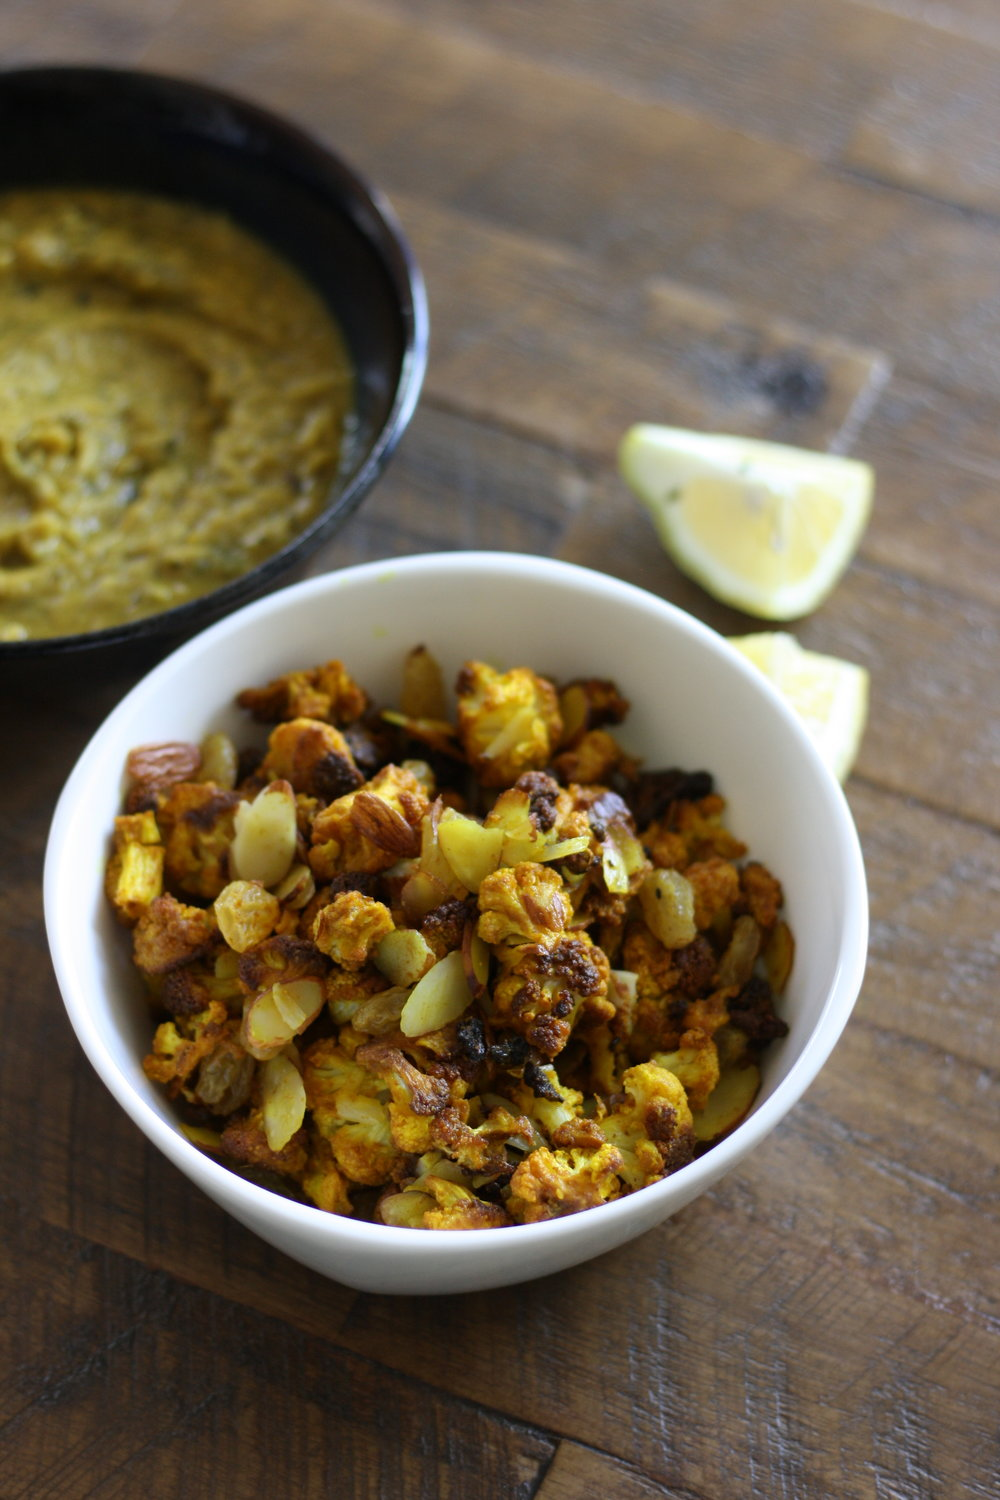 Photo (clockwise): Shorbat Addas,  Turmeric Roasted Cauliflower with Shaved Almonds and Golden Raisins.